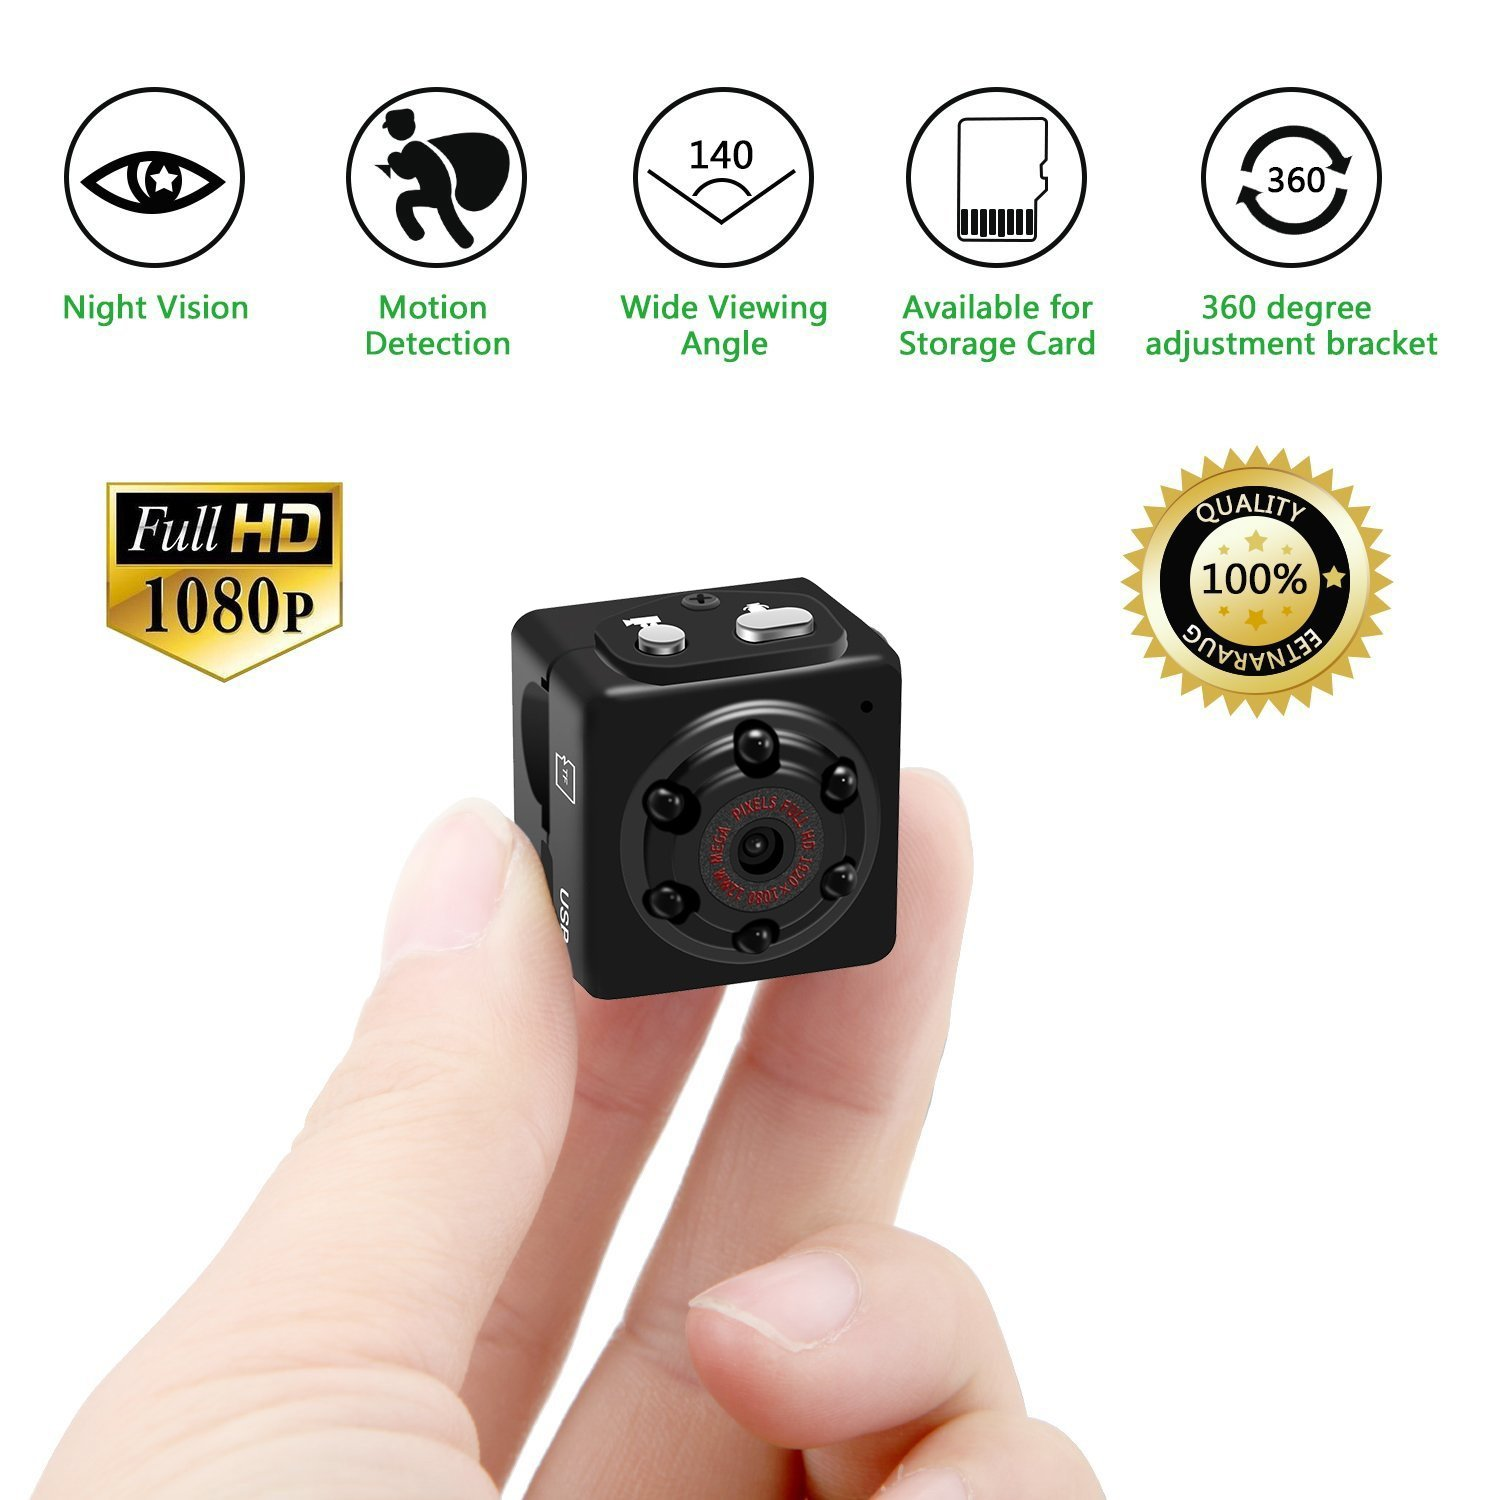 Mini Hidden Spy Camera, Tiny Nanny Hidden Camera System Surveillance Wireless 1080P Motion Detection Night Vision for Home Security -No WIFI Funtion